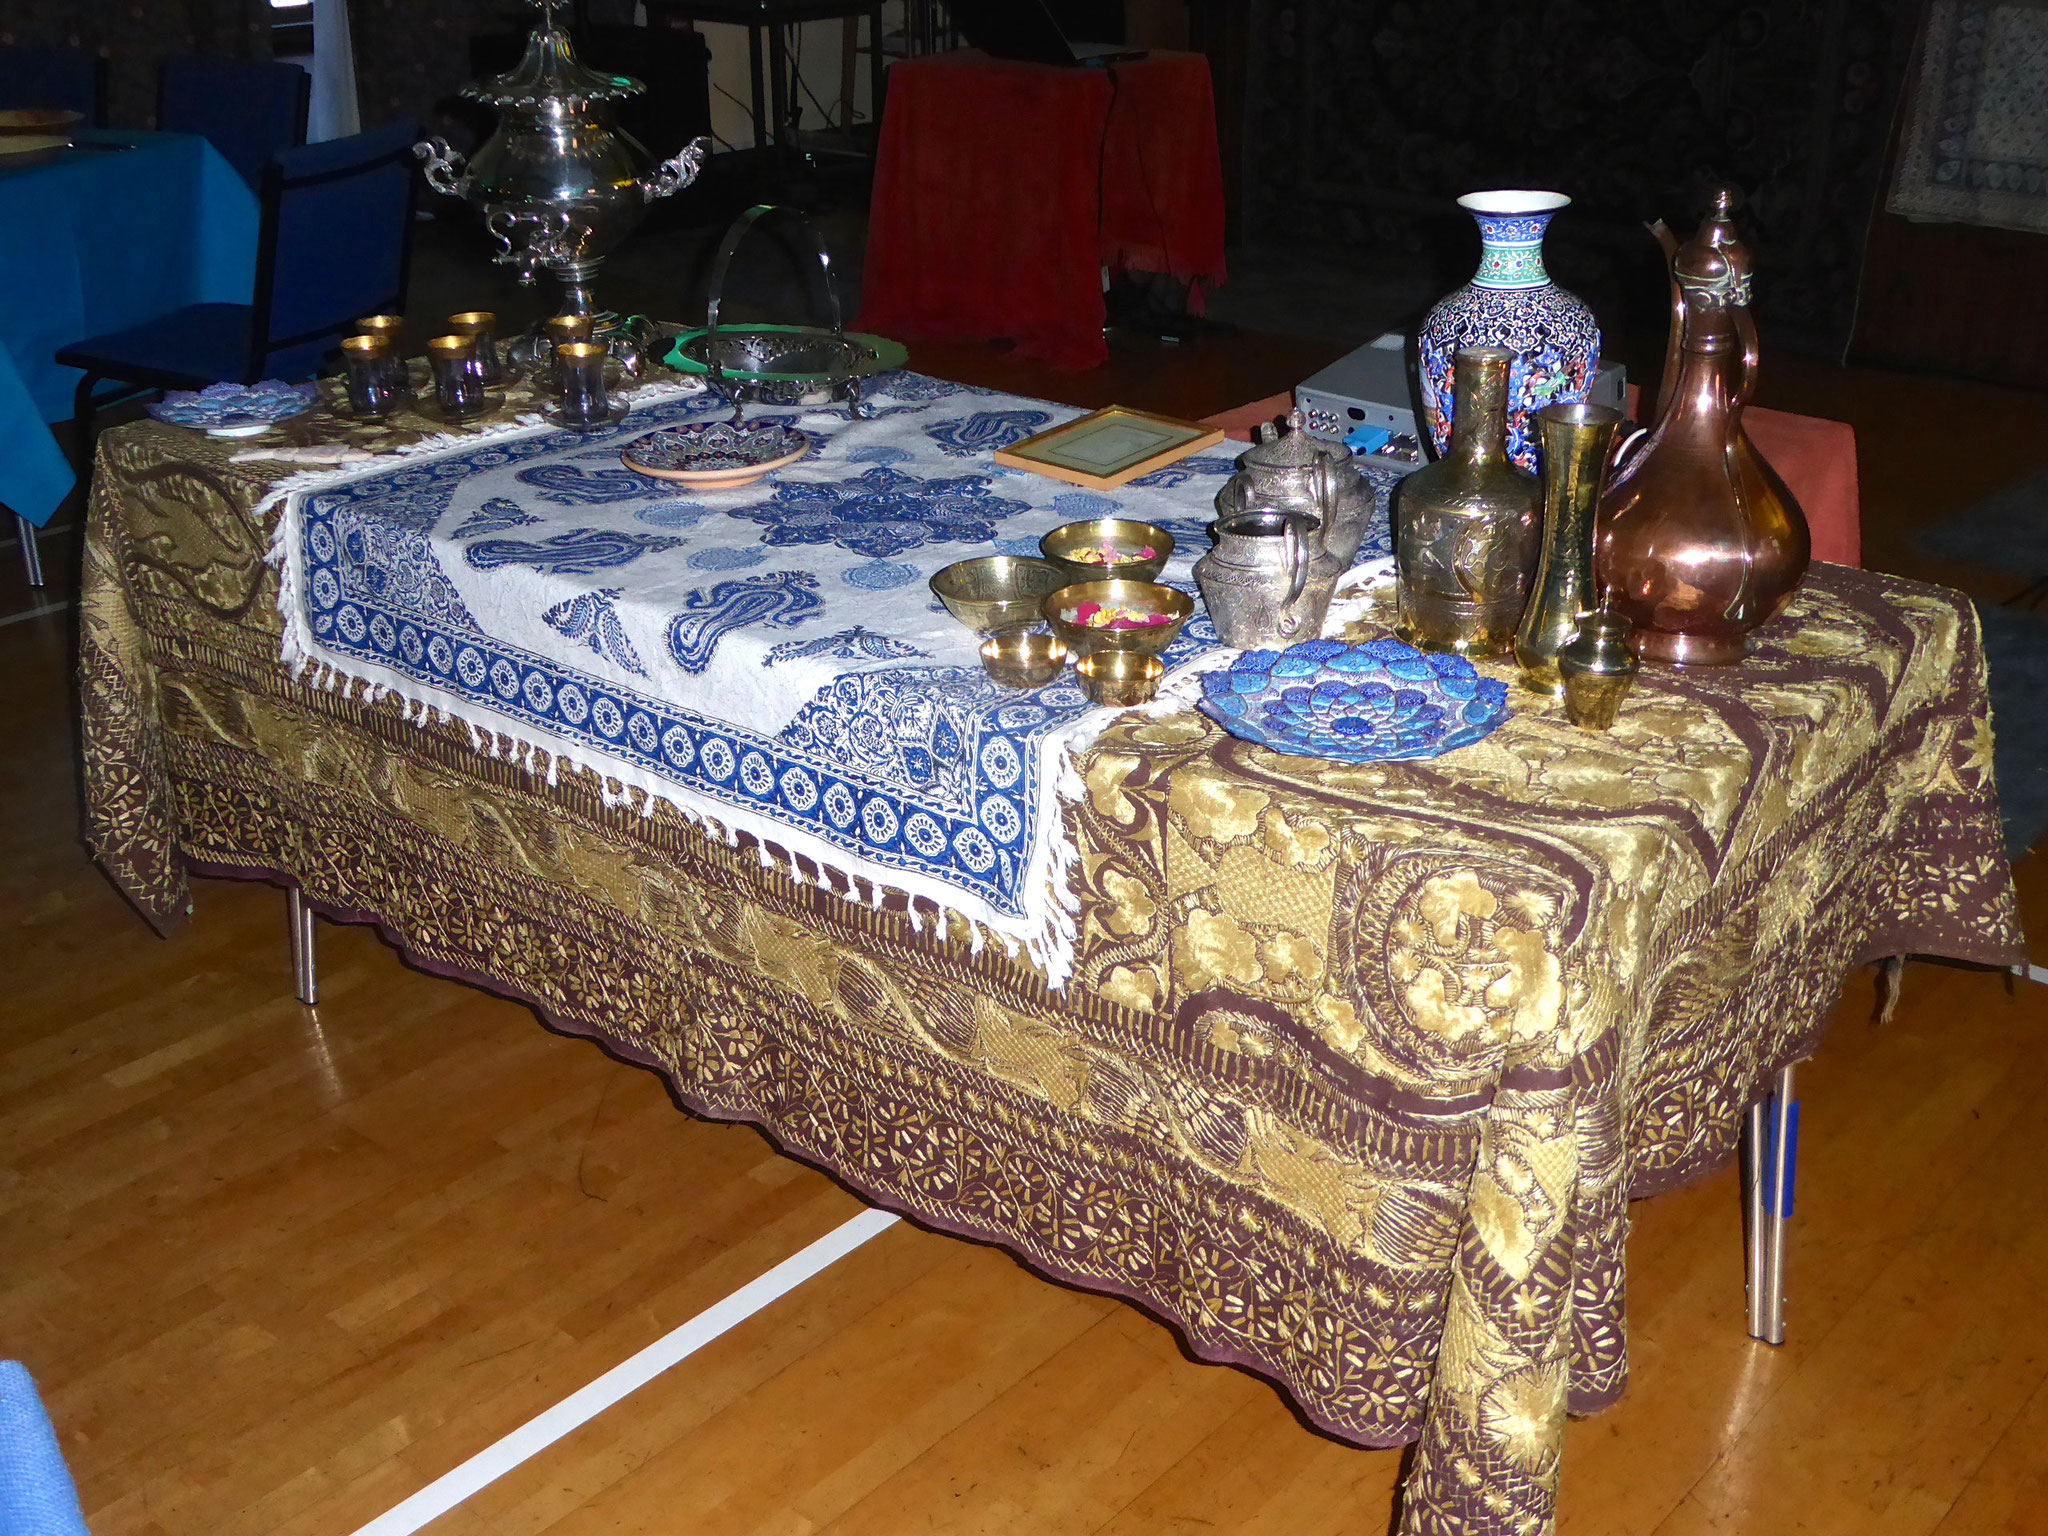 Some of the Middle-Eastern artefacts on display